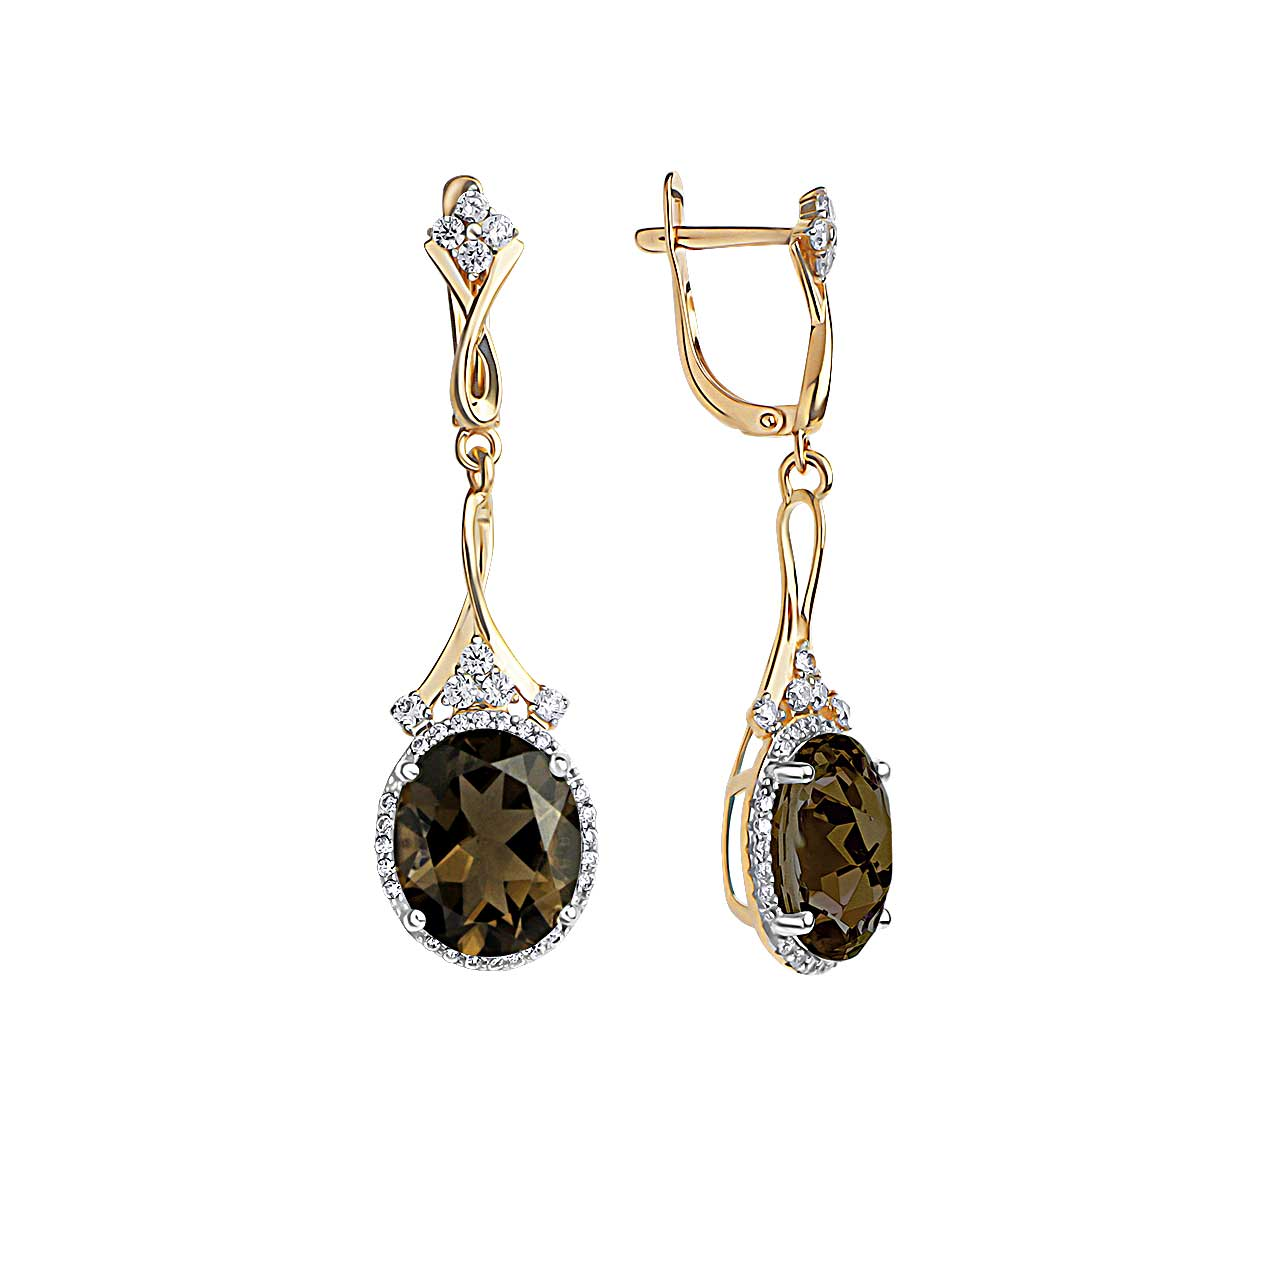 Rauh Topaz and CZ Cocktail Earrings